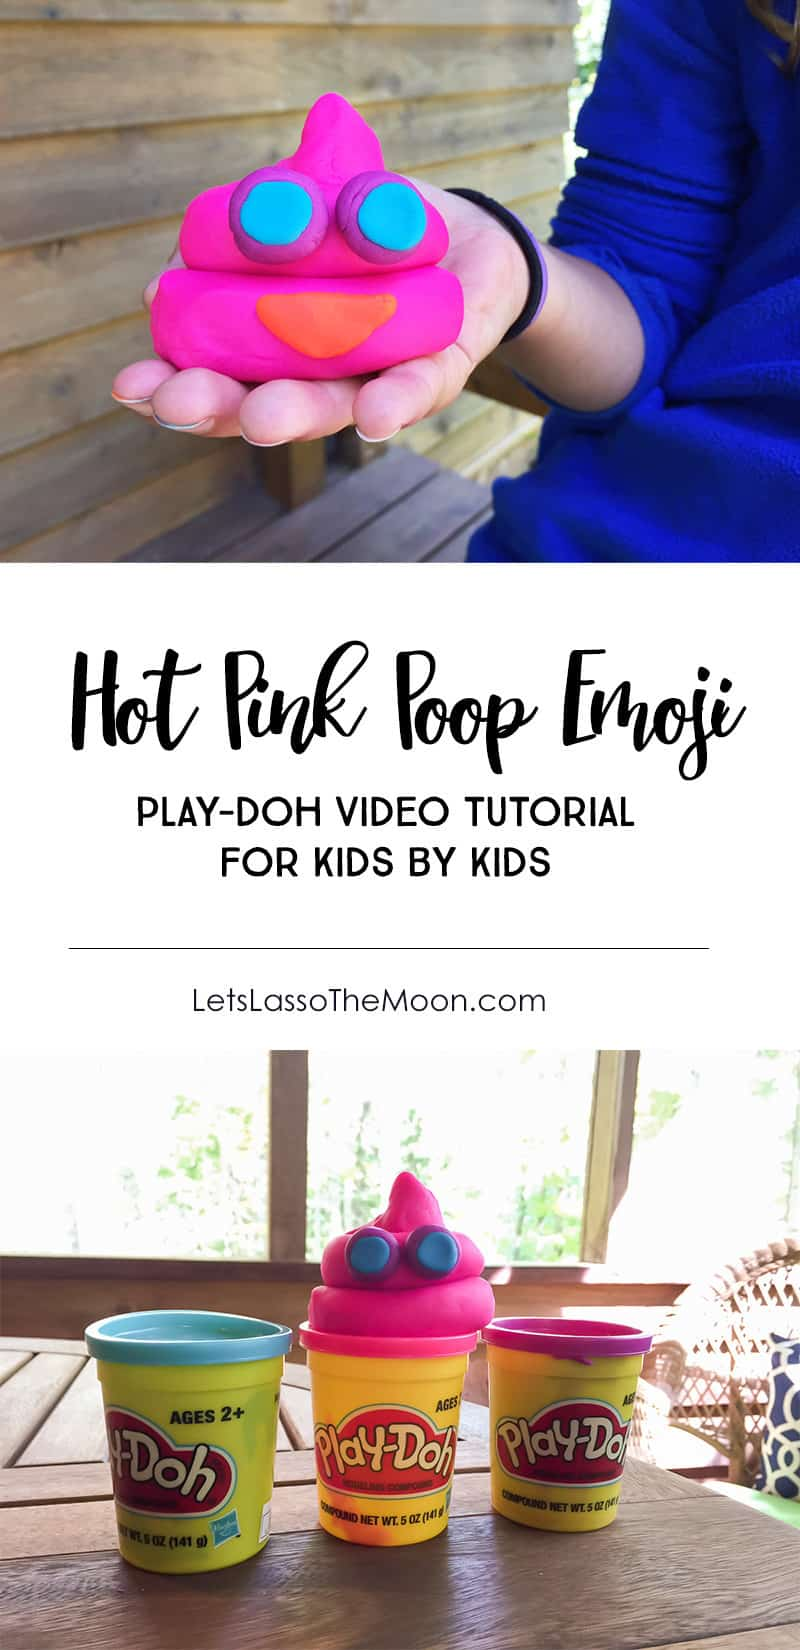 Learn how to make a play dough poop emoji with this video tutorial + find awesome tween emoji gift ideas